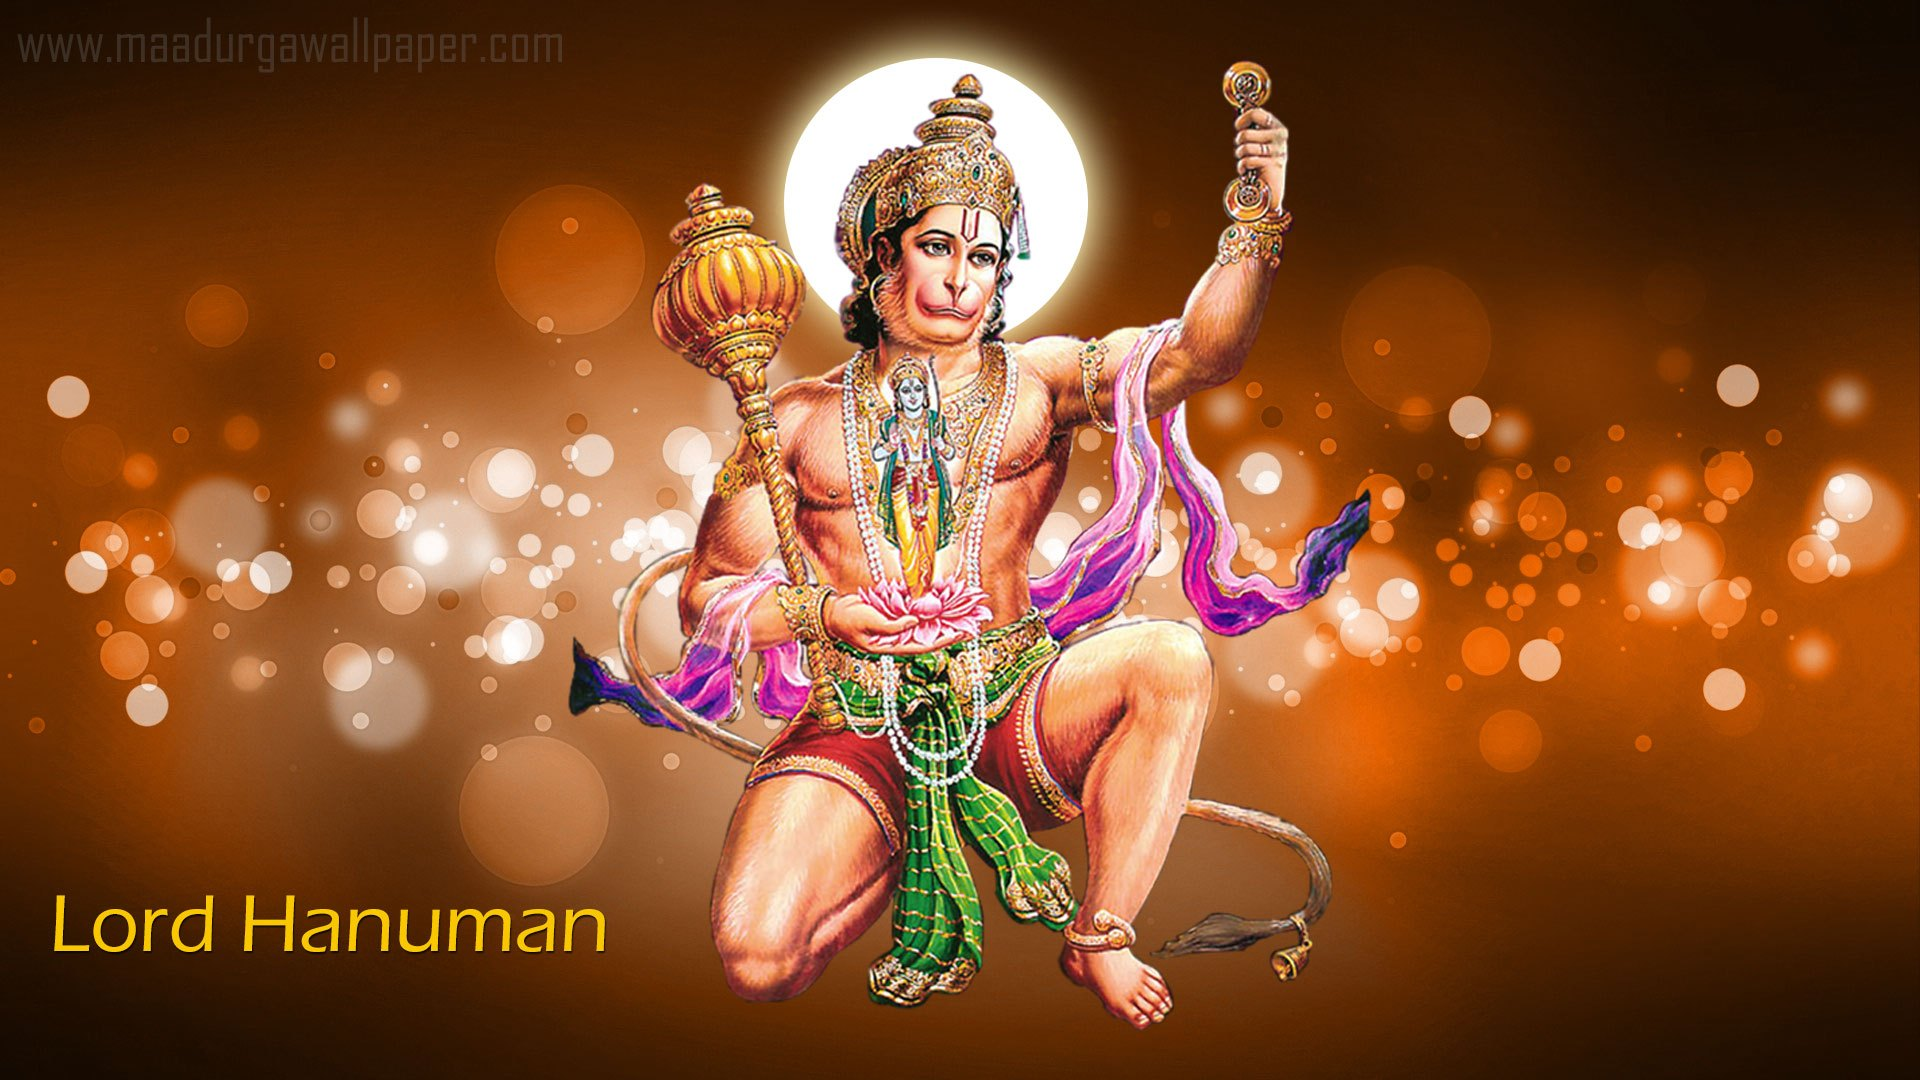 Hanuman Hd Wallpaper 1920 1080 Hanuman Images Hd 1920x1080 Download Hd Wallpaper Wallpapertip